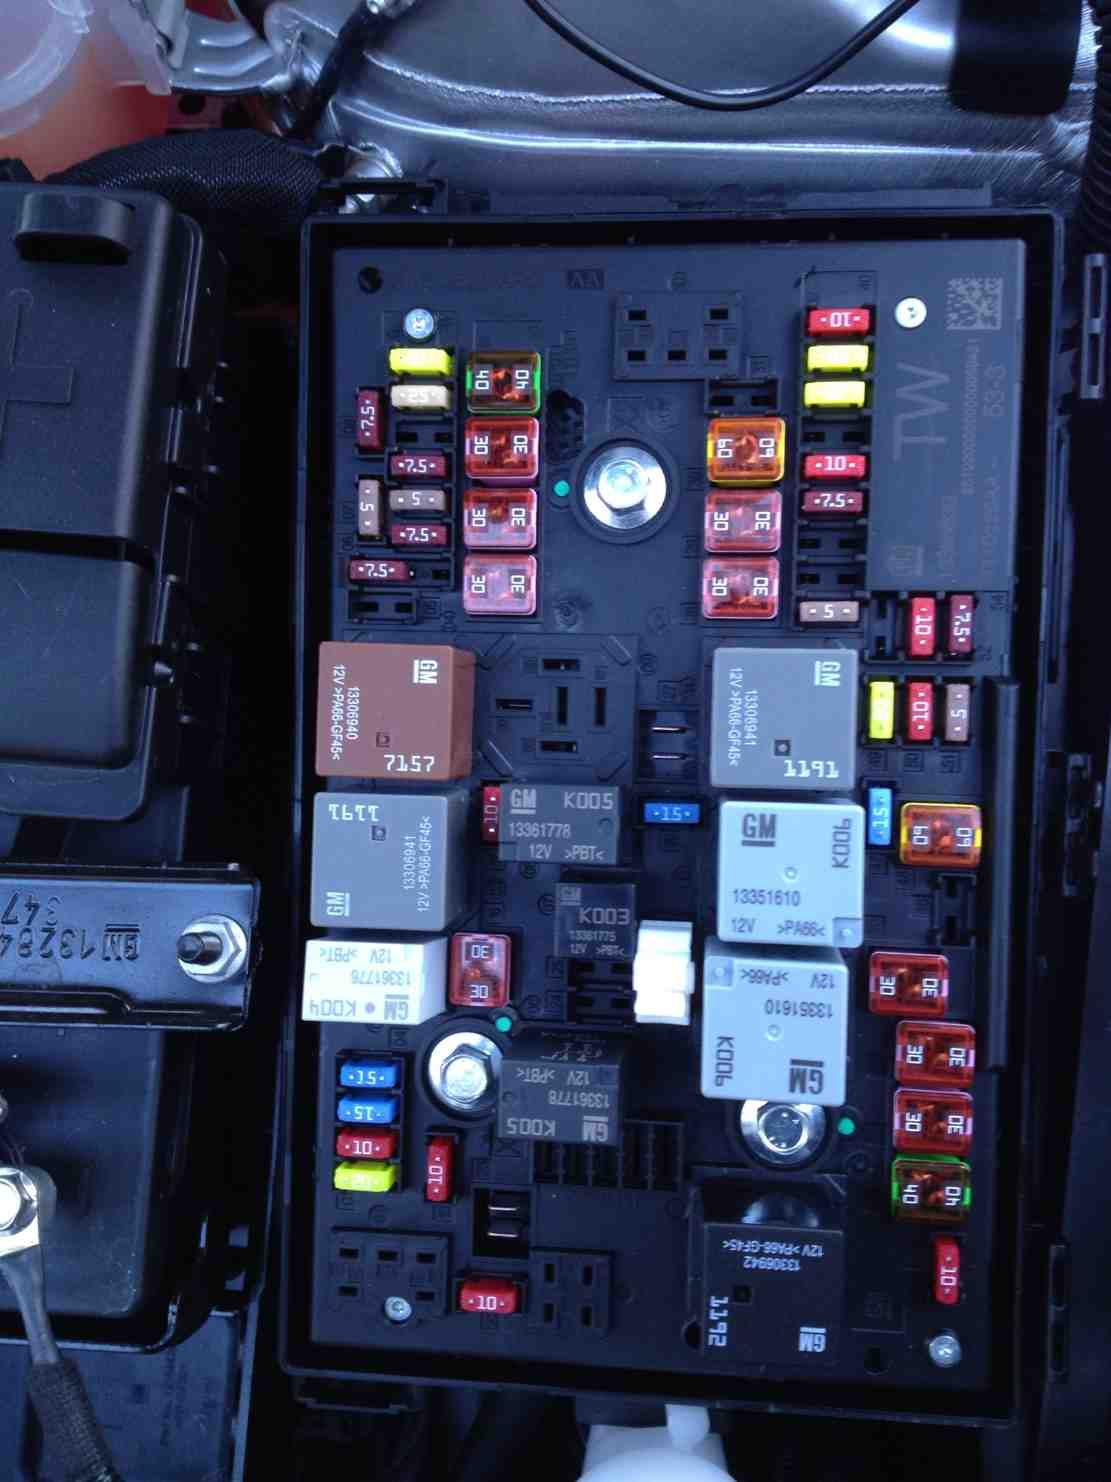 hight resolution of 09 astra fuse box best wiring libraryastra h engine fuse box diagram wiring library astra gsi